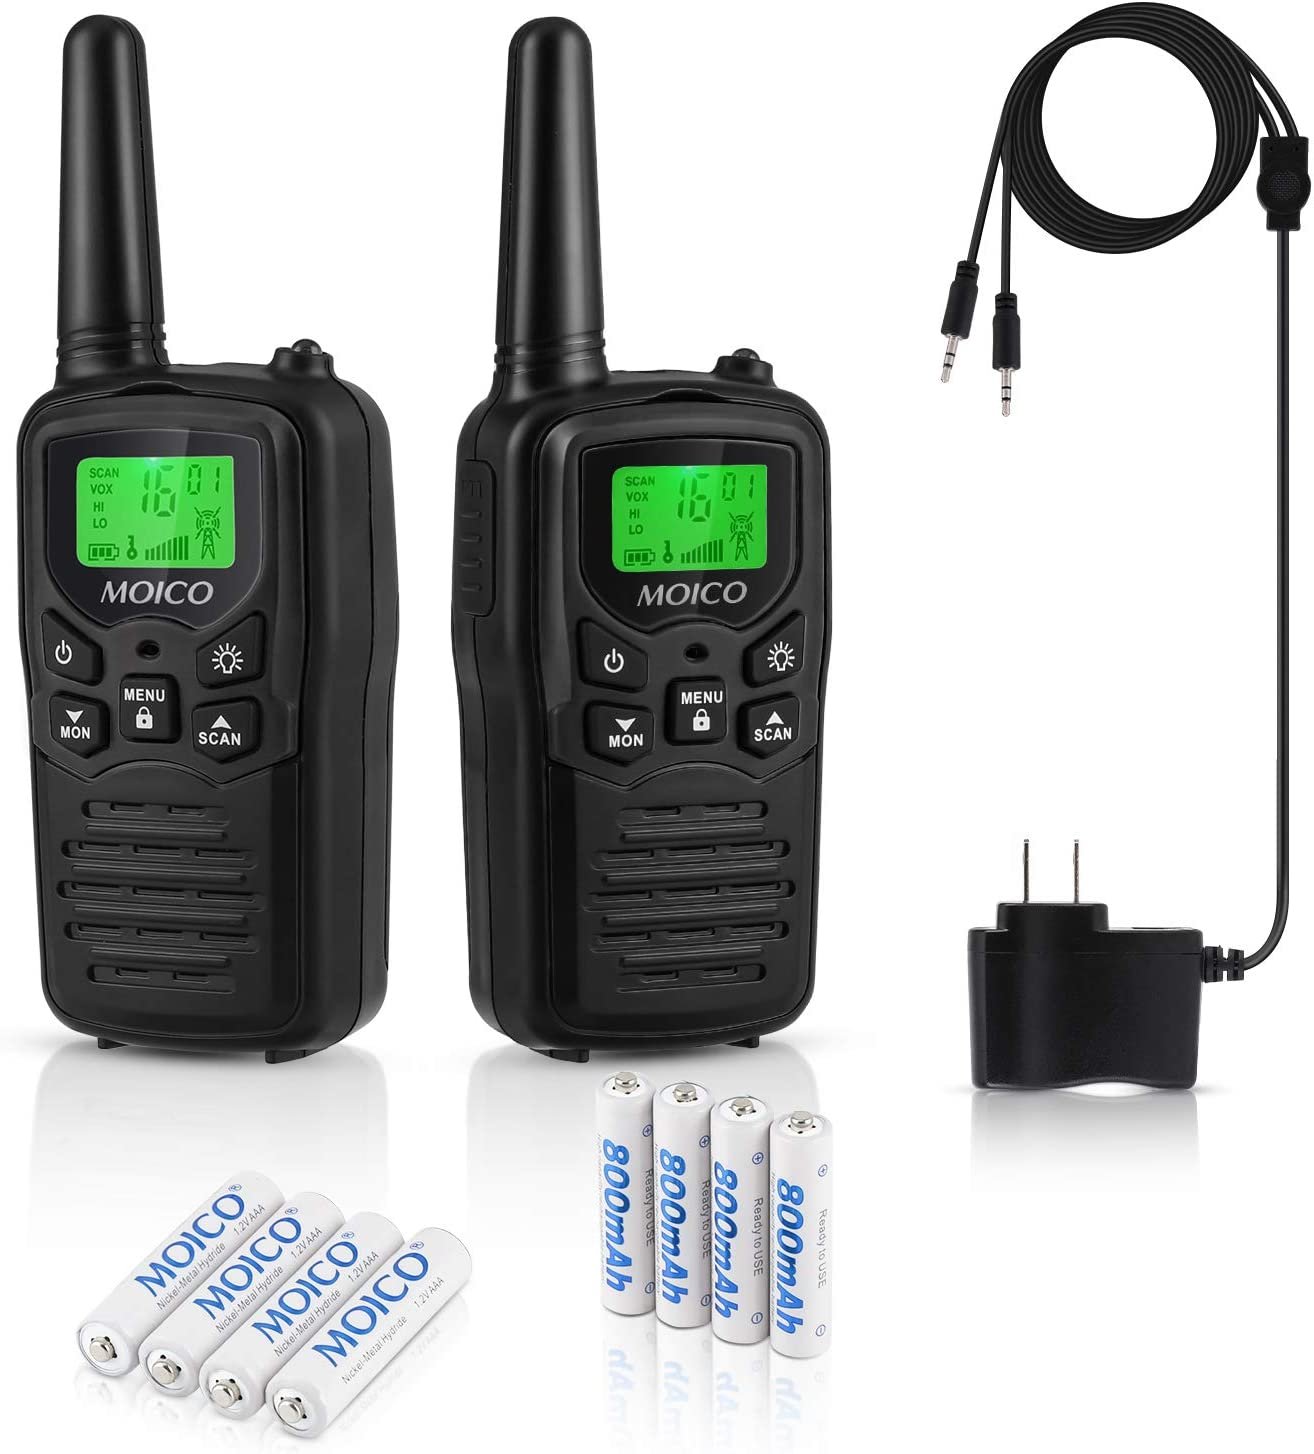 Professional Rechargeable Walkie Talkies,MOICO Long Range Two Way Radios for Adults up to 5 Miles in Open Area,Handheld Talkies Talky with 22Channels FRS/GMRS VOX Scan LCD Display LED Flashlight Black